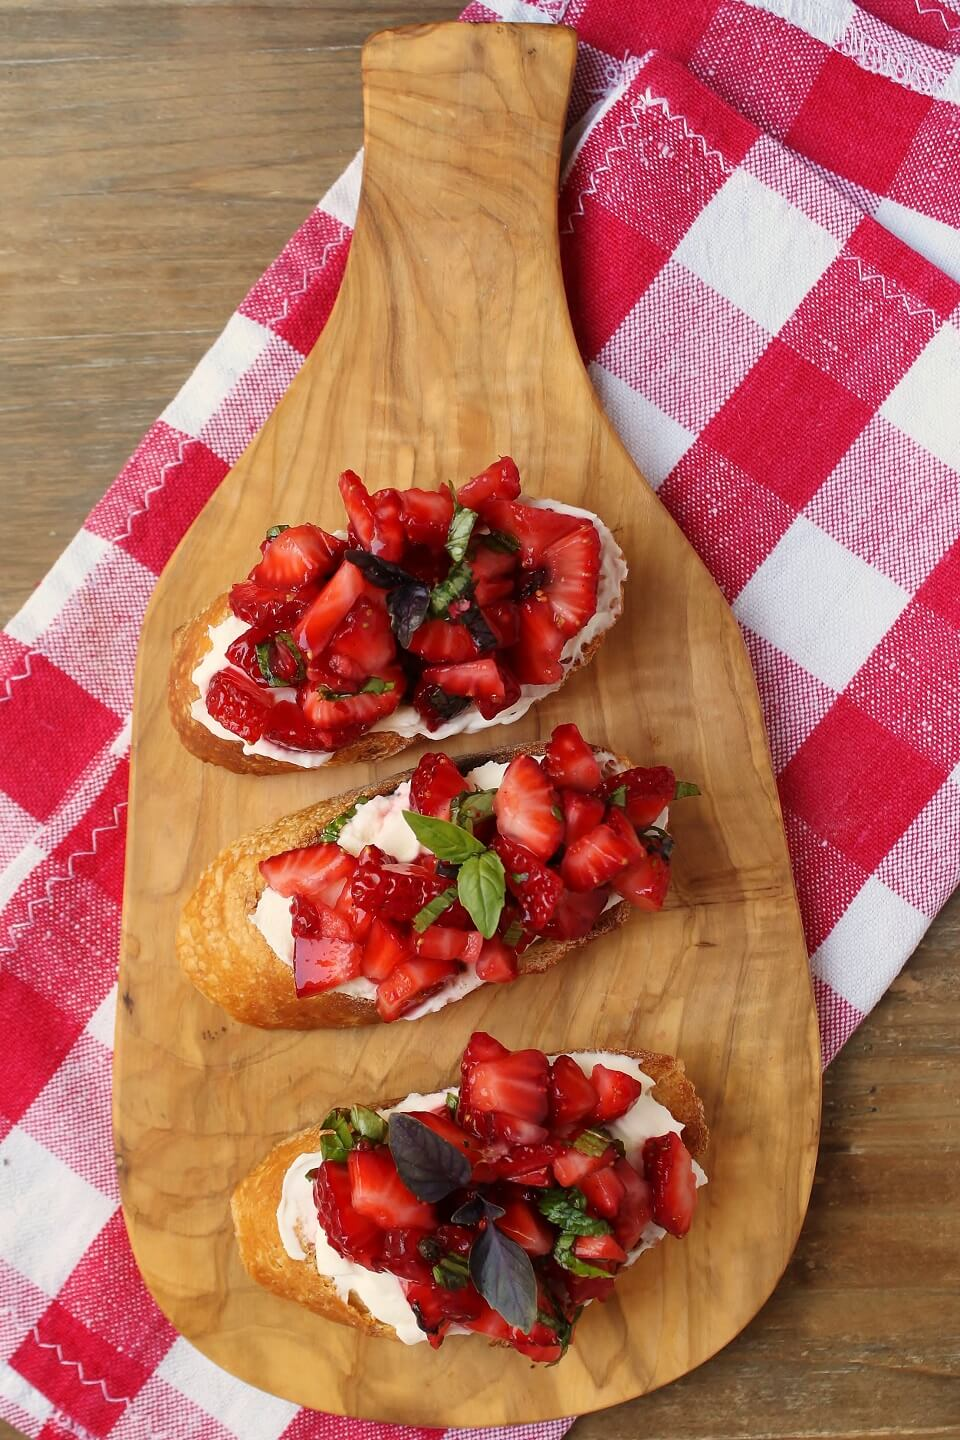 A wooden board holding Strawberry Basil Crostini: three slices of baguette topped with red strawberries and green basil.